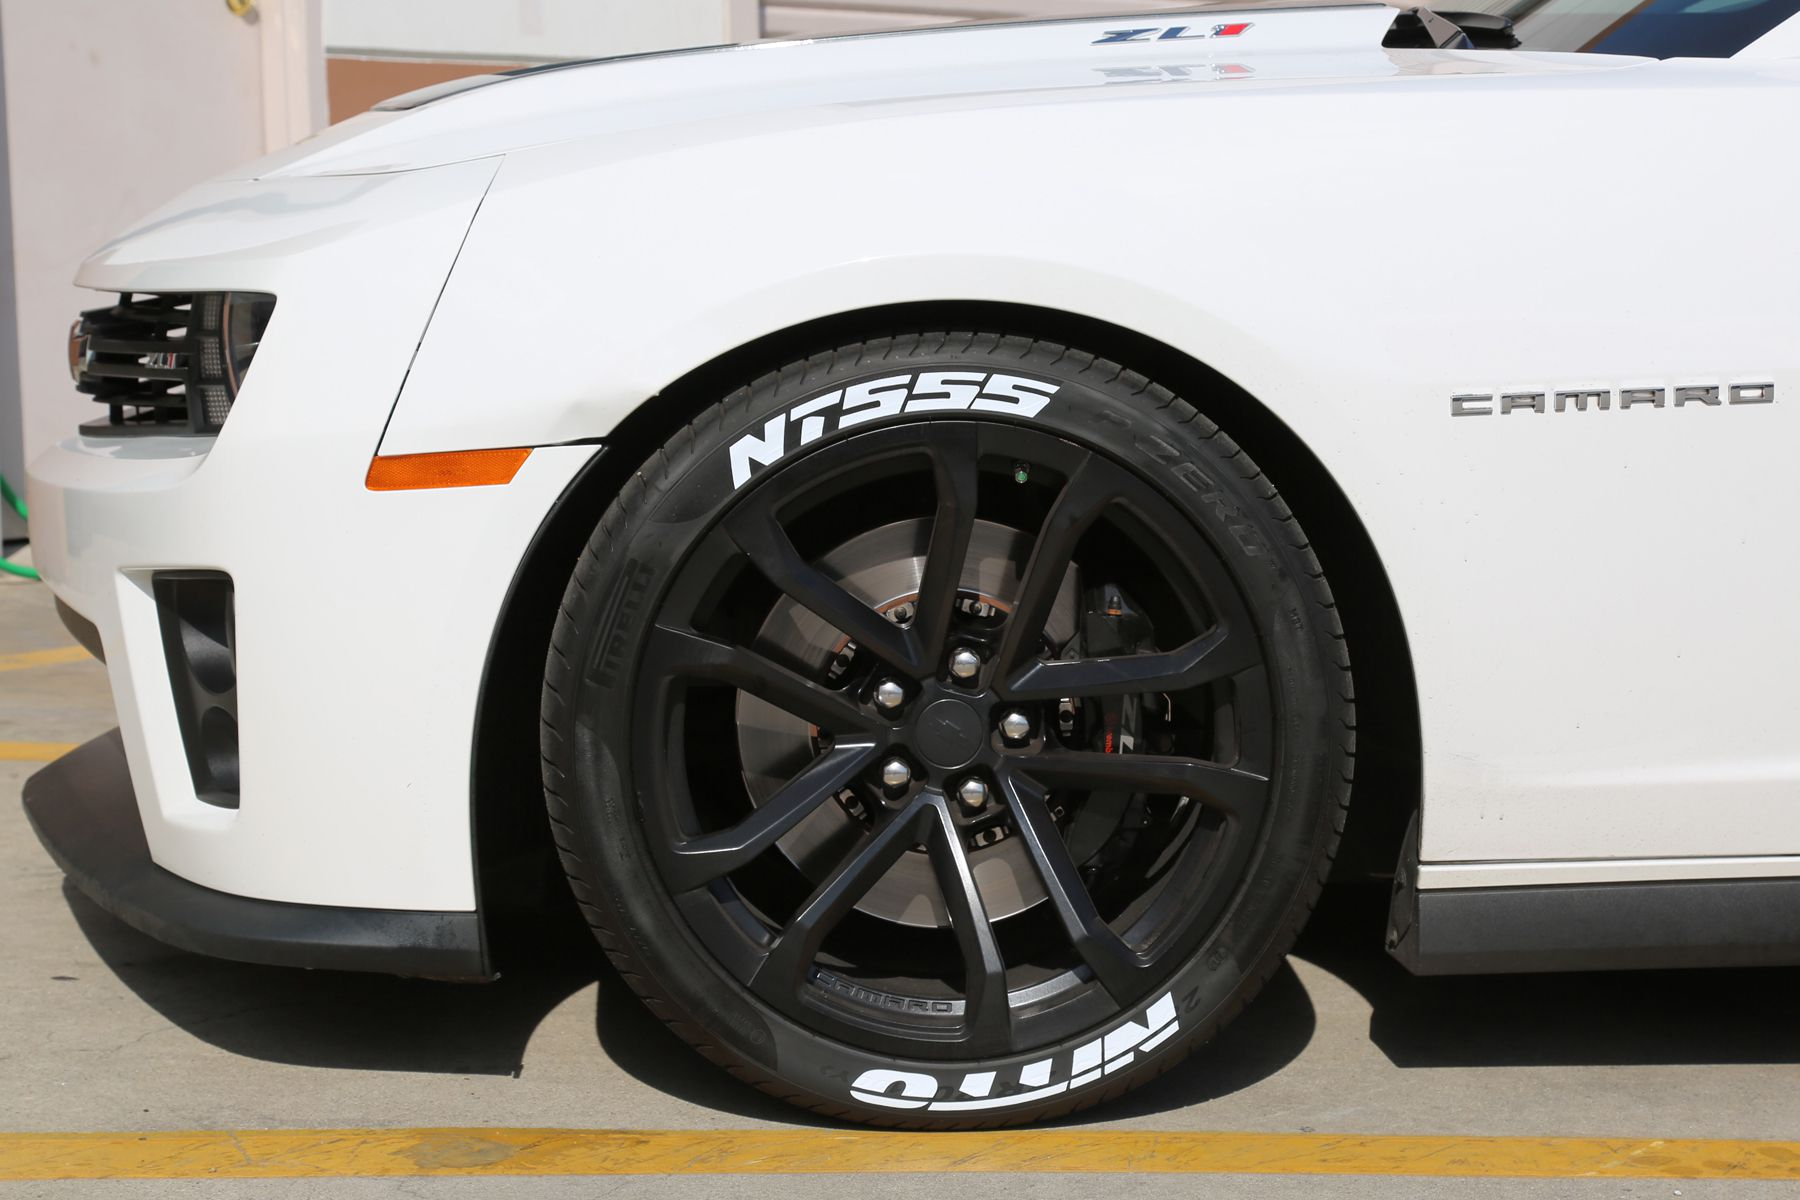 Nitto Nt555 White Letters >> Nitto Tires with White Lettering | How To Format Cover Letter